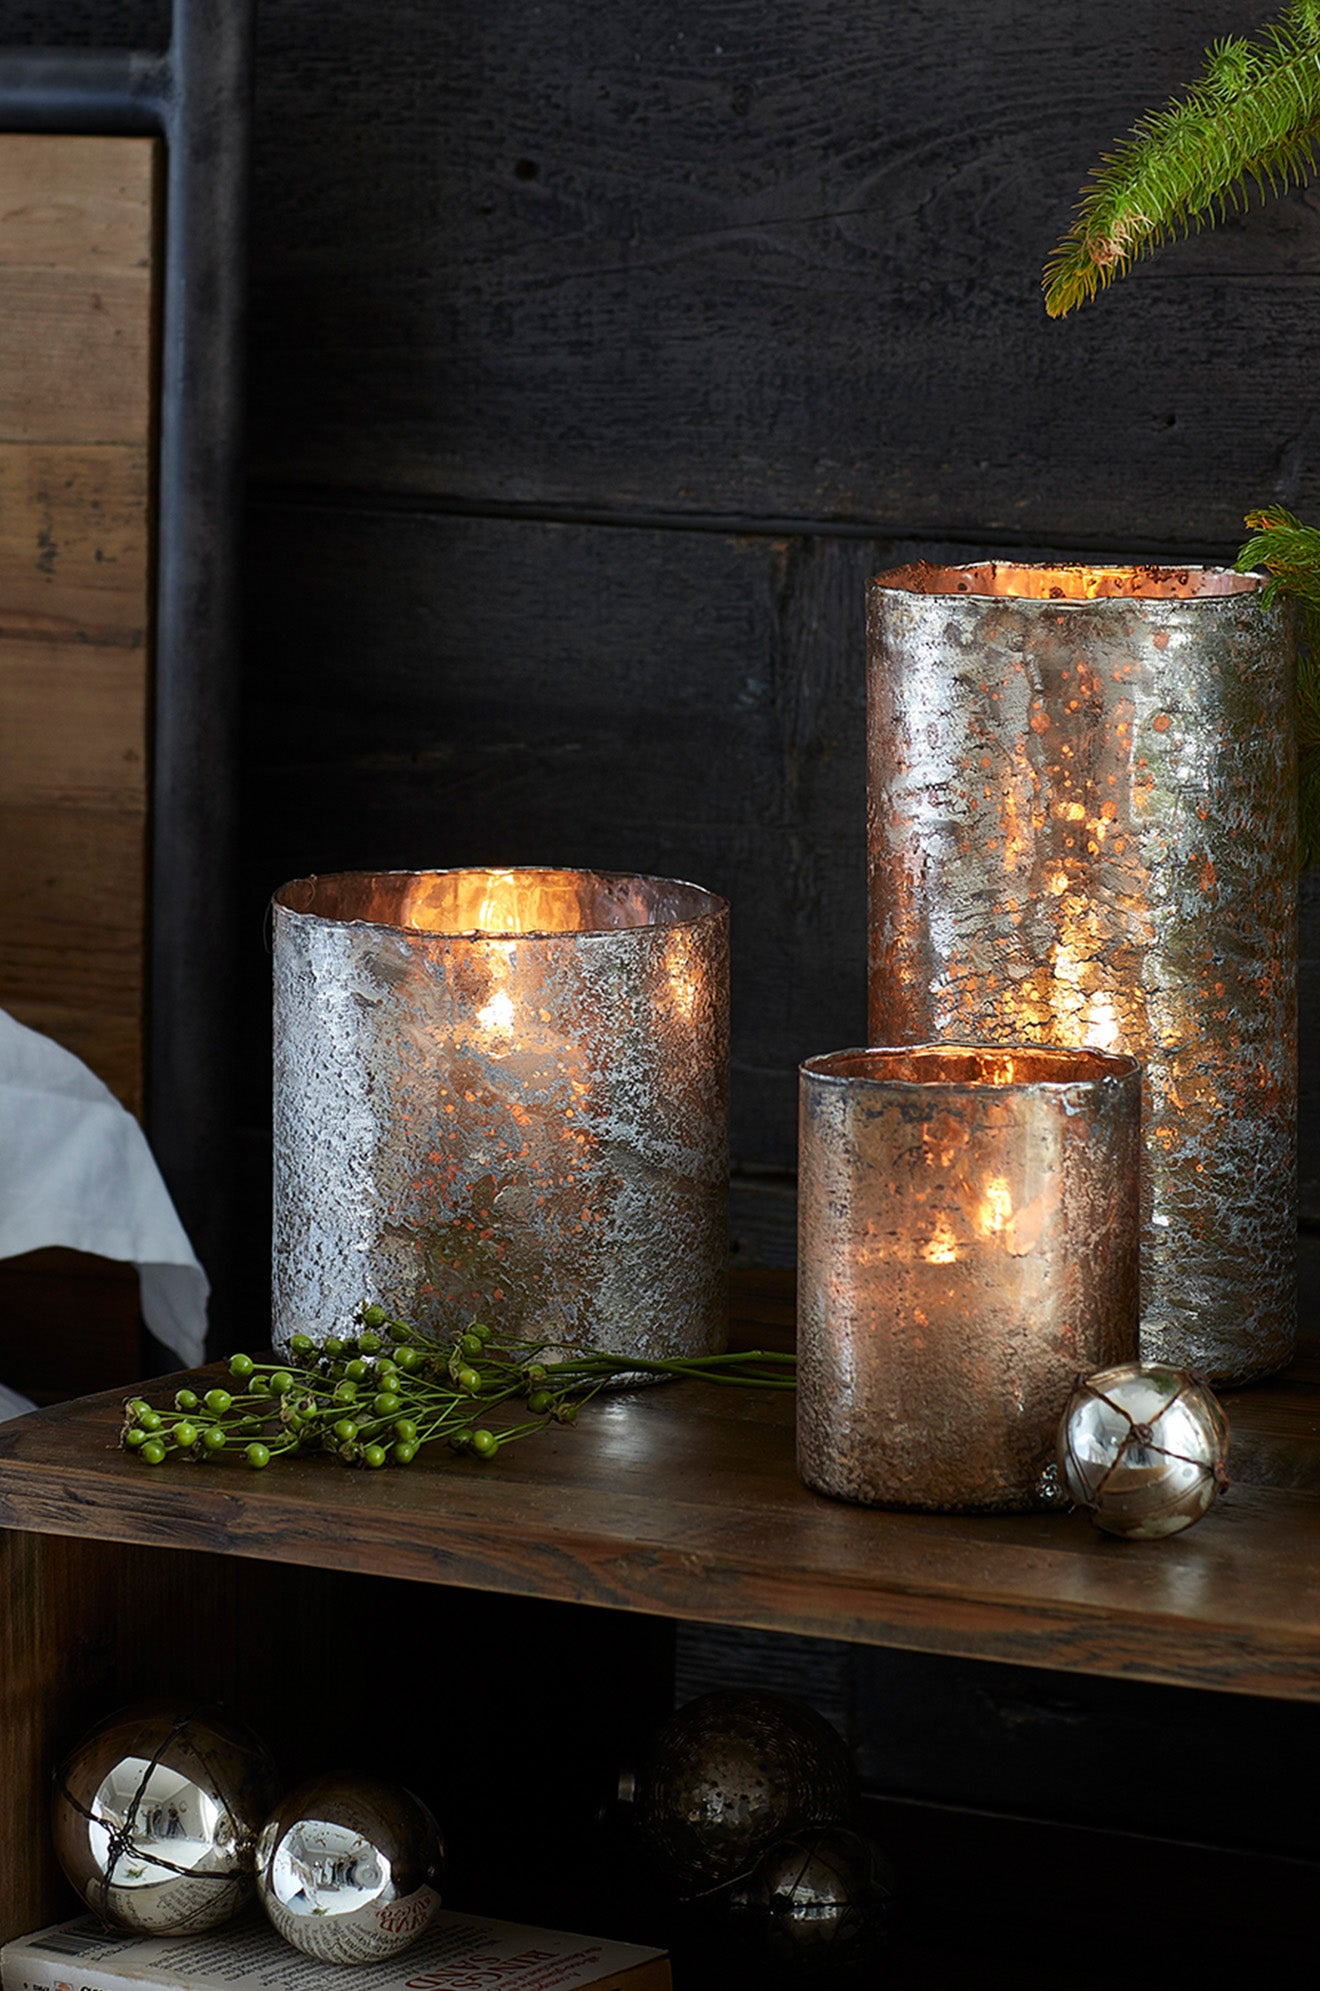 Lombok cracked gold texture candle holders for the Winter season